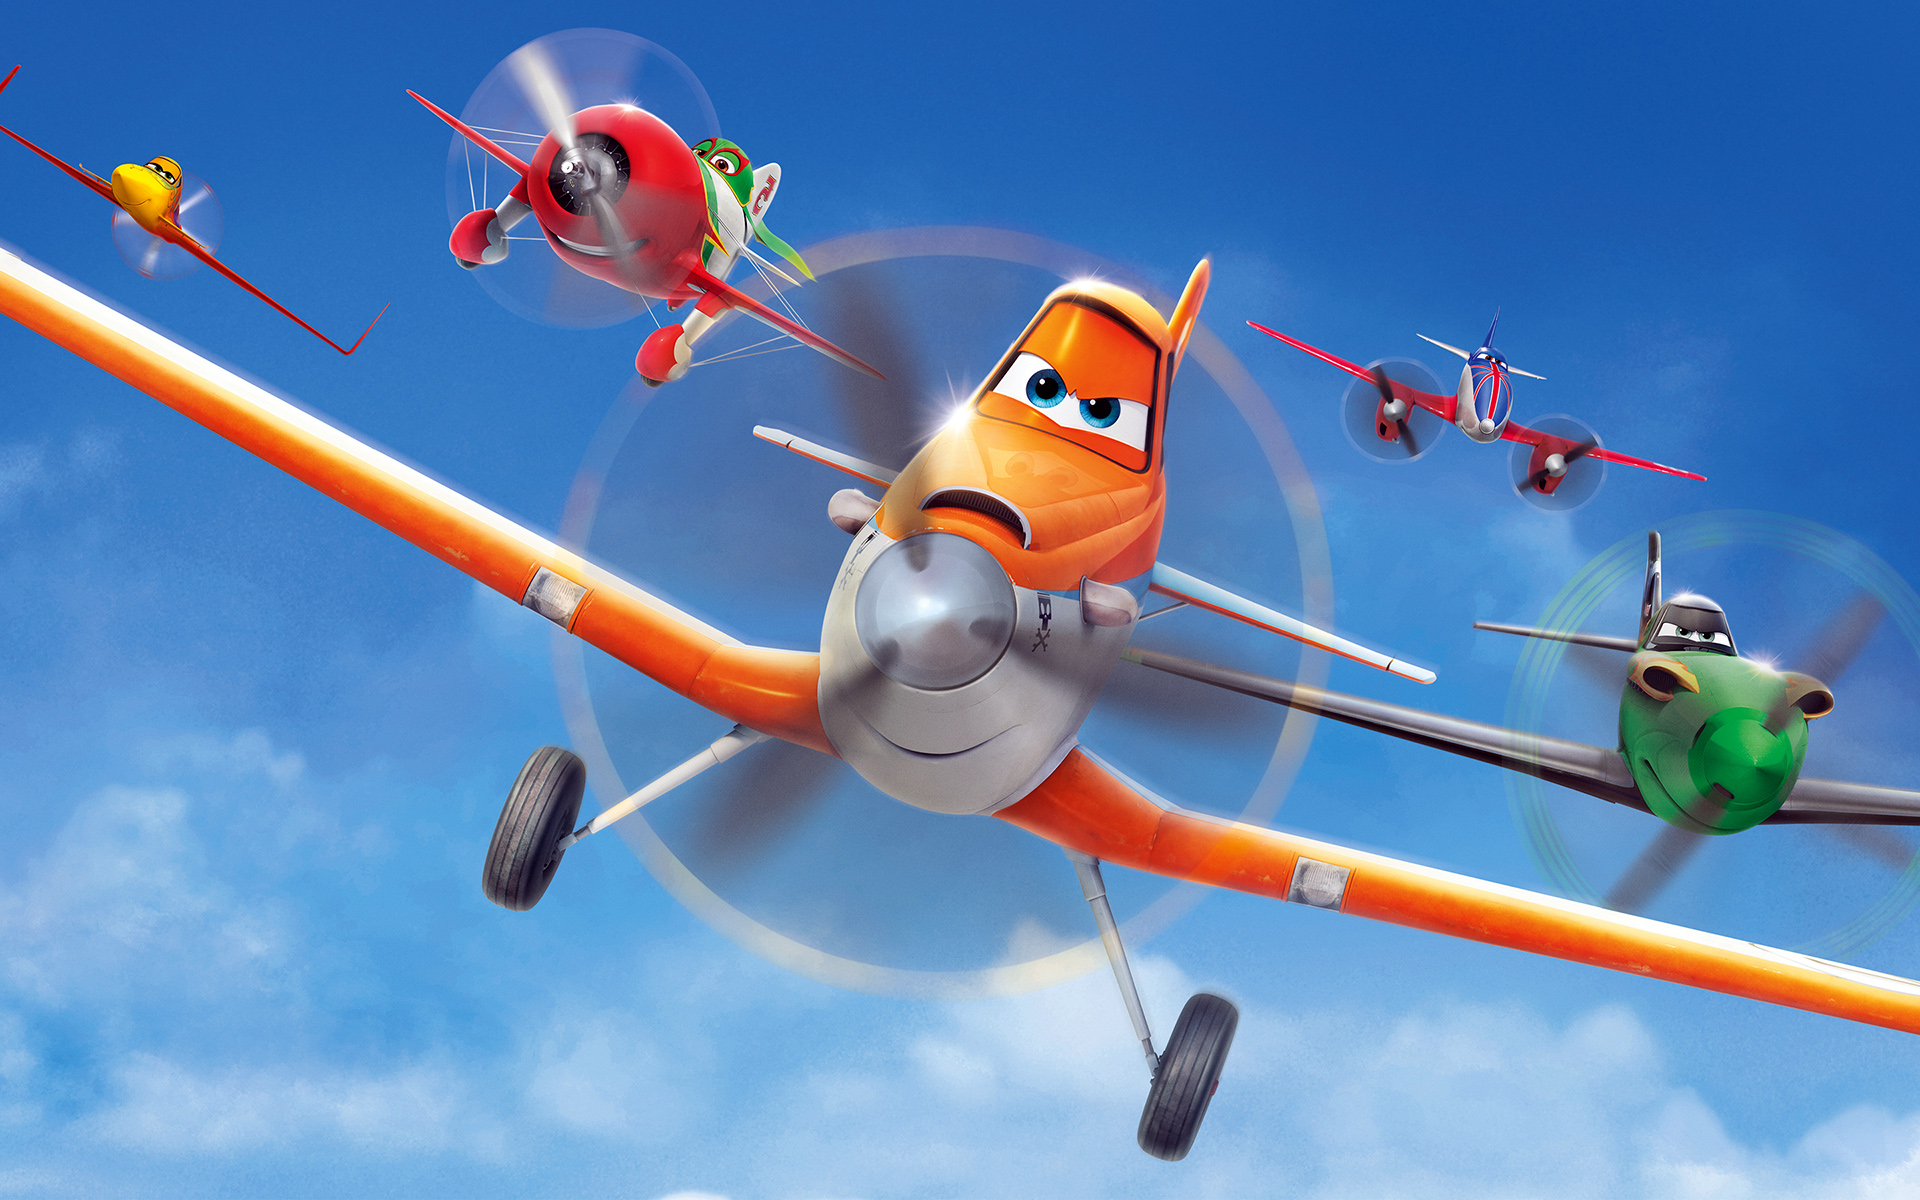 Cool Planes Movie Wallpaper